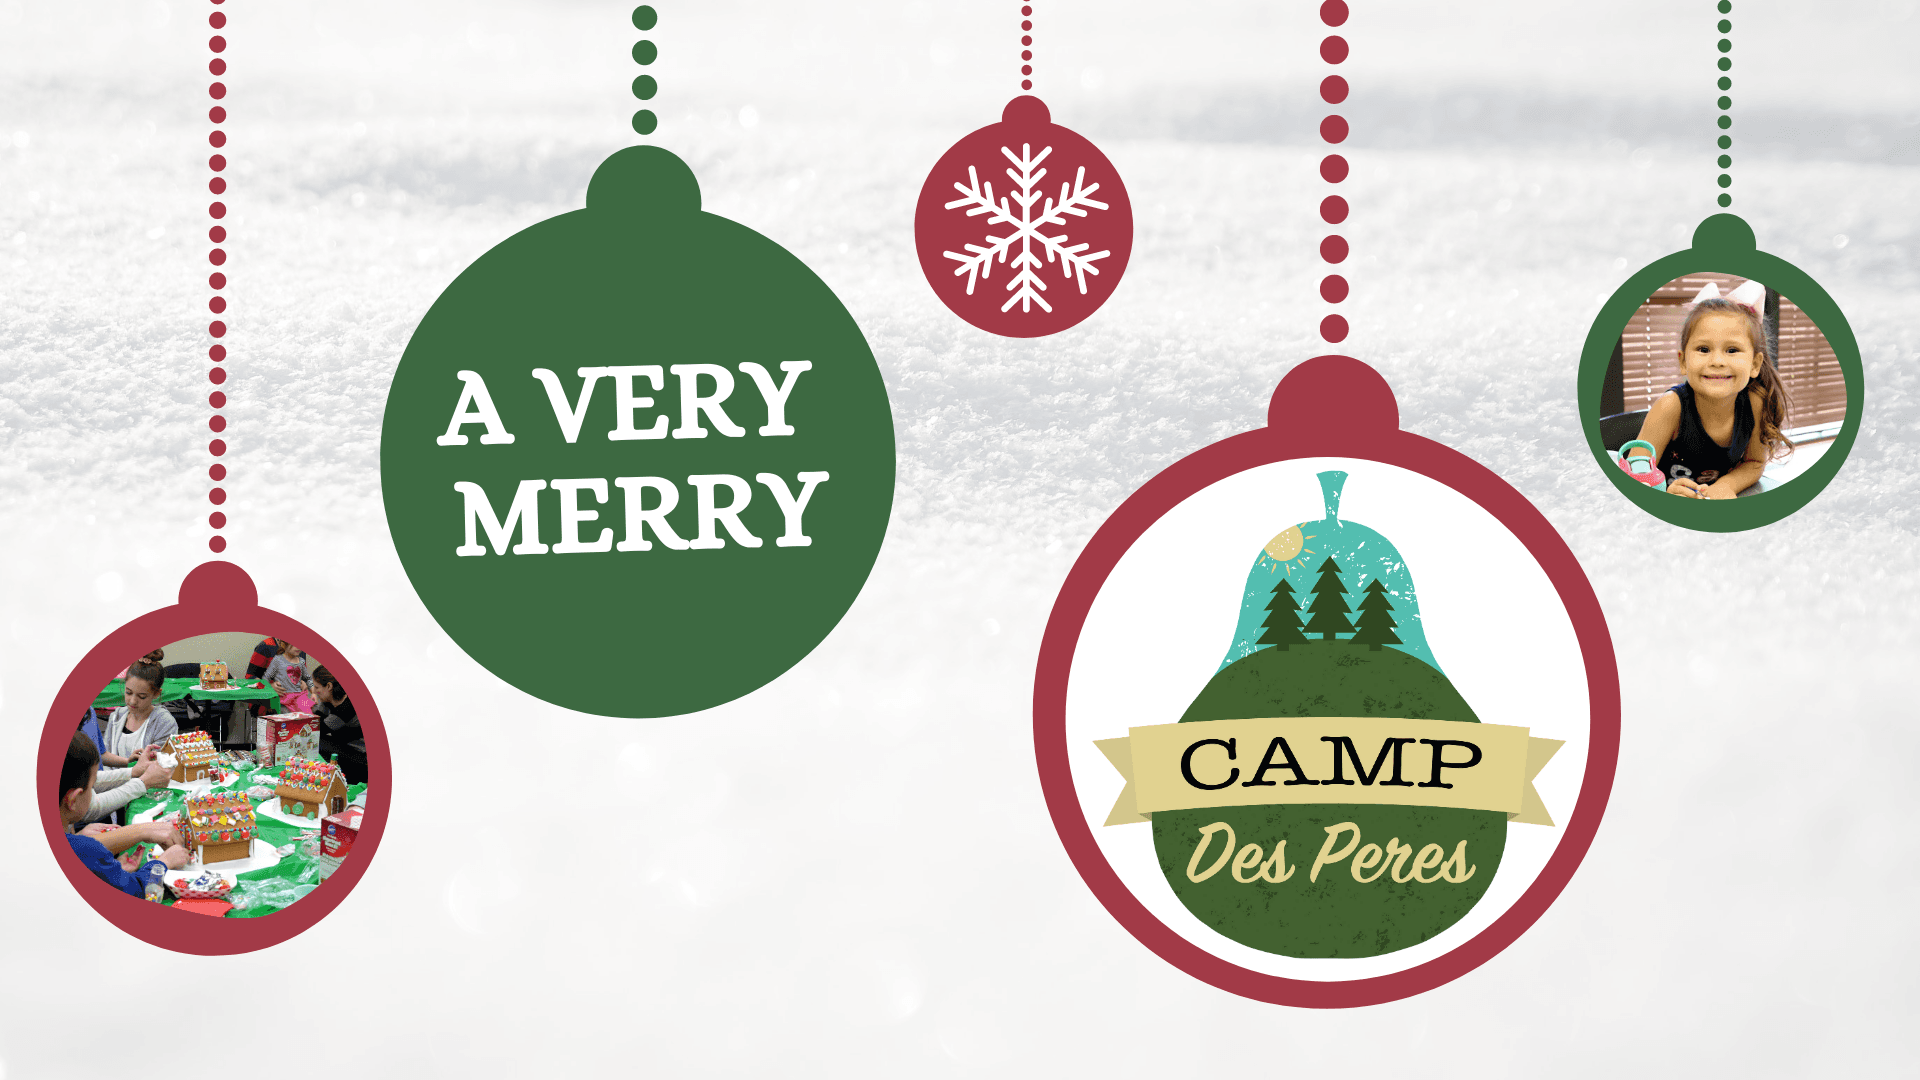 Winter Camp Des Peres